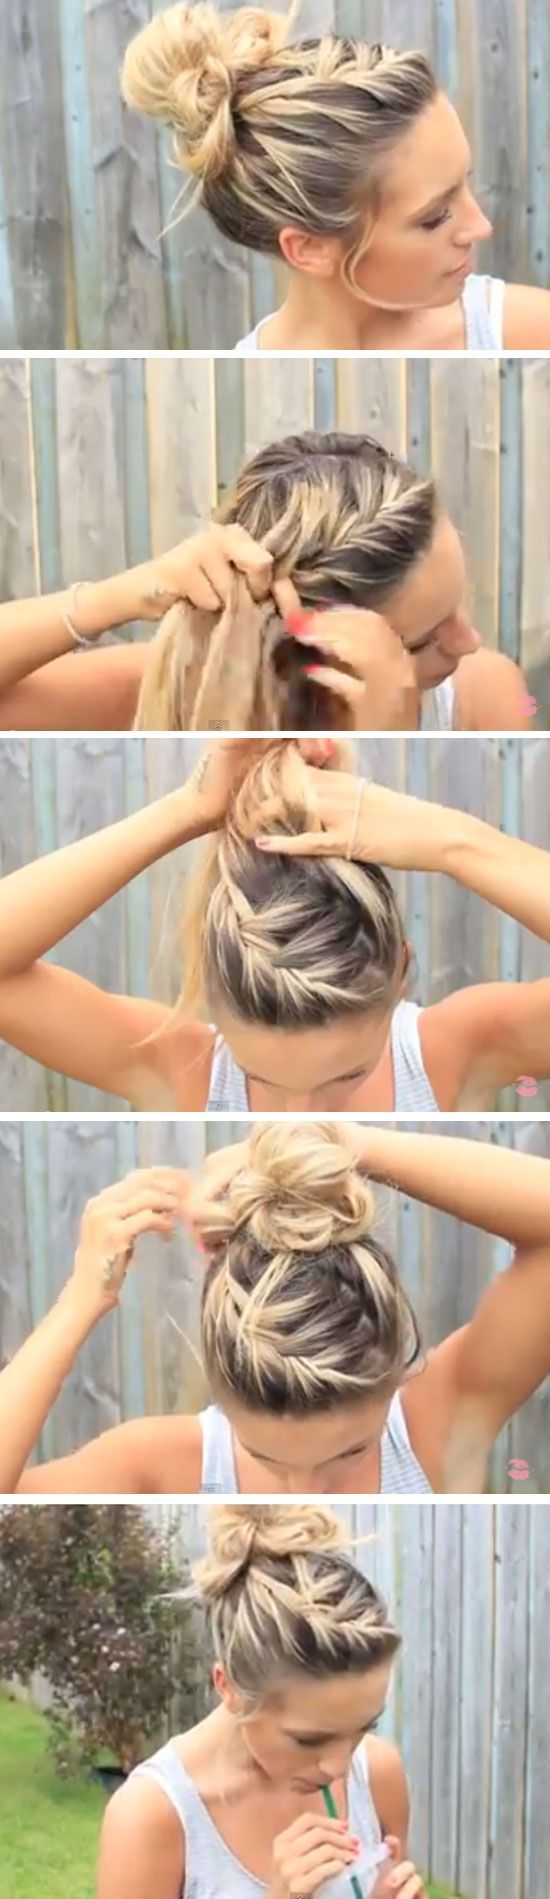 Swell 1000 Ideas About Easy Hairstyles On Pinterest Hairstyles For Hairstyles For Women Draintrainus